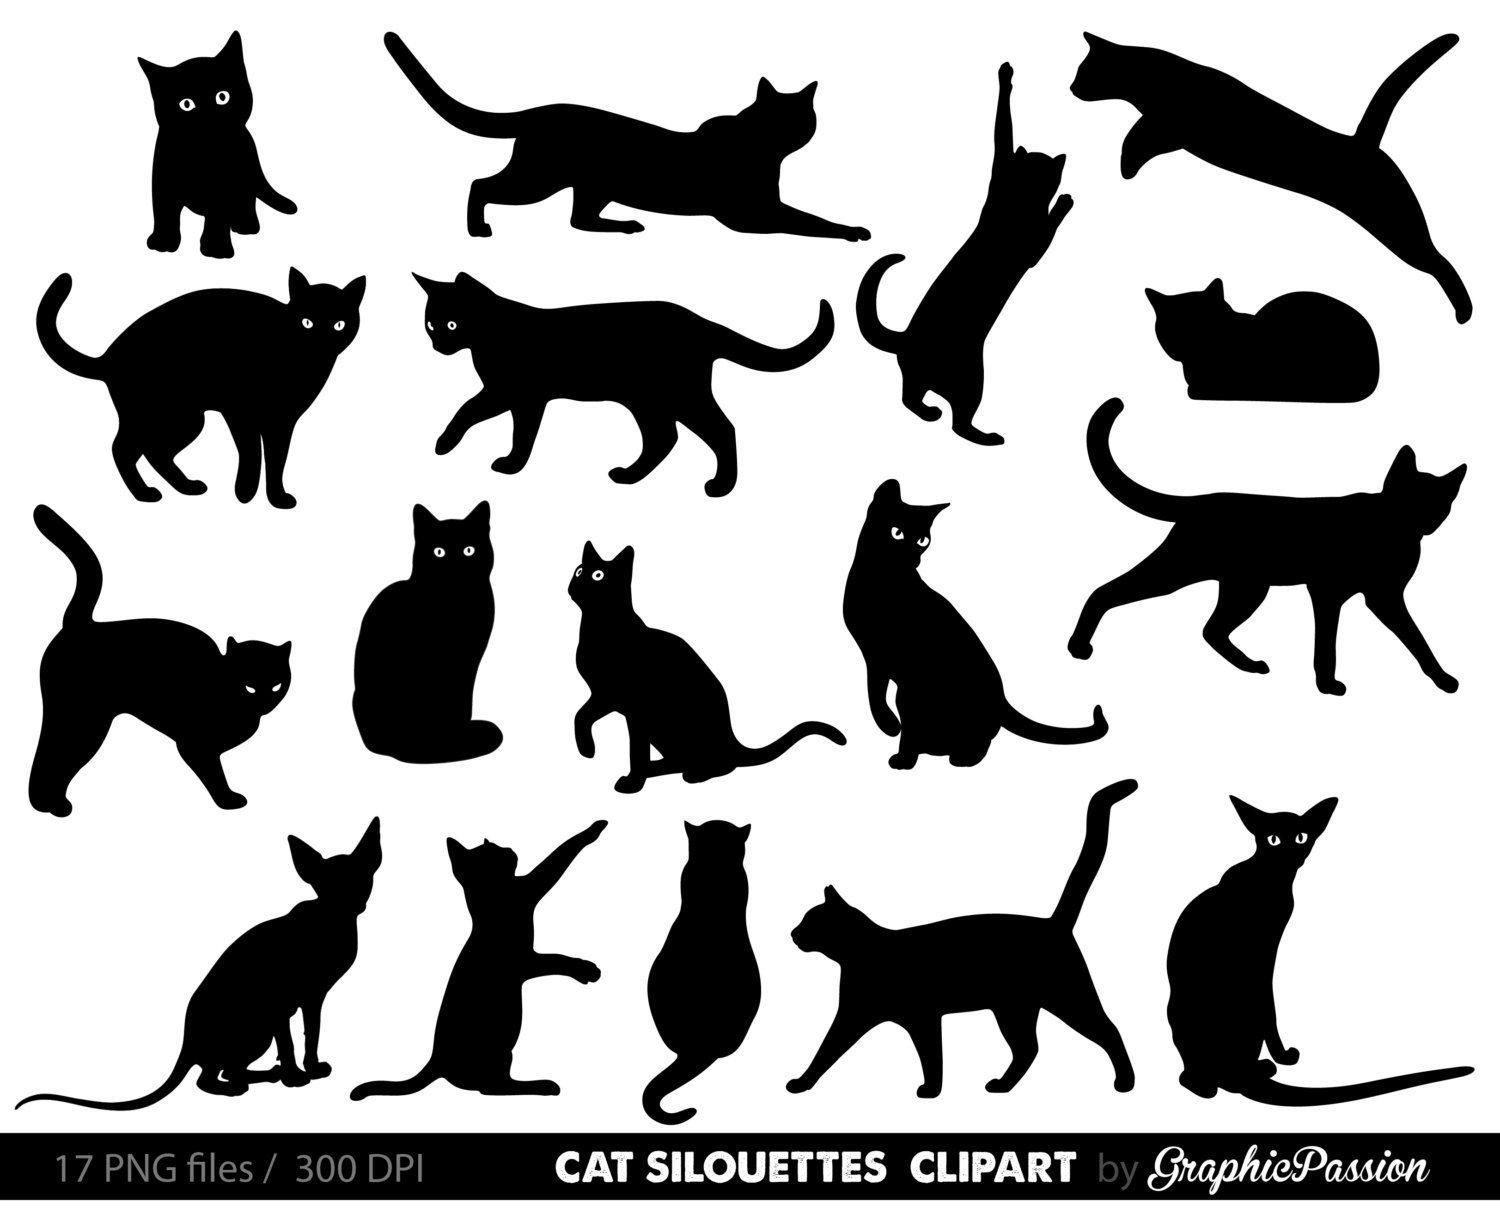 Cat Clipart Image Editing Handmade Crafts Cupcake Toppers Embroidery Patterns Coloring Pages Cute Animals Small Businesses Web Design